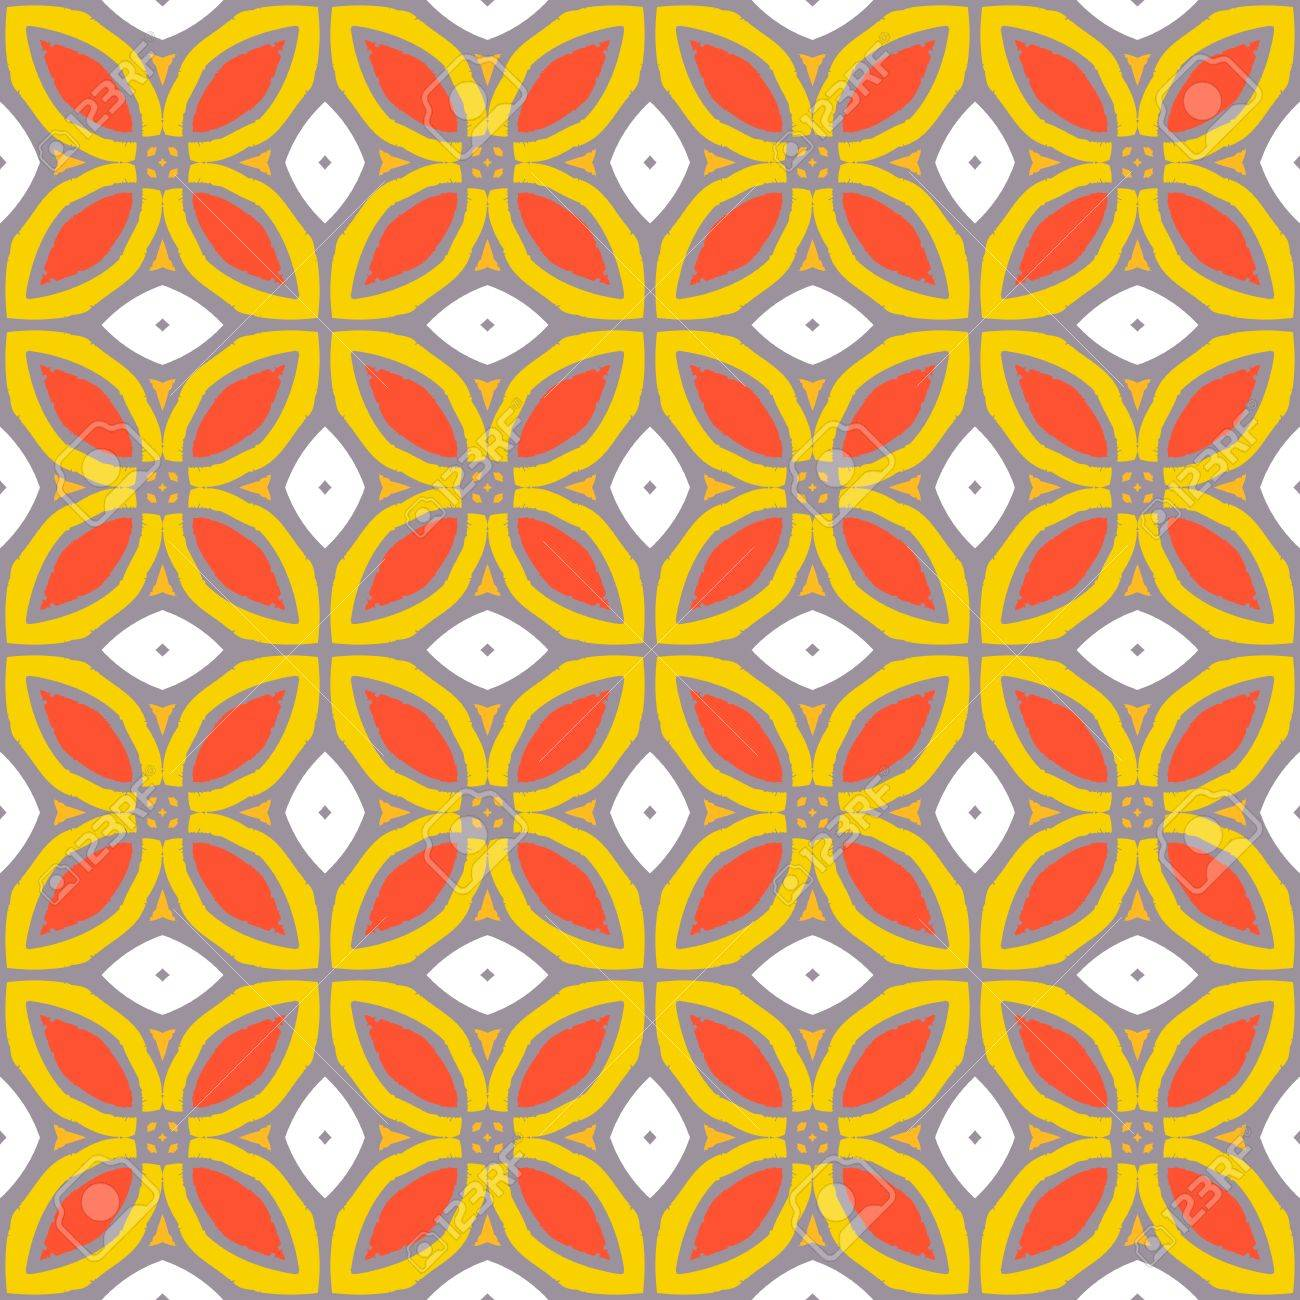 Seamless Vector Pattern With Bold Geometric Shapes In 1970s Style